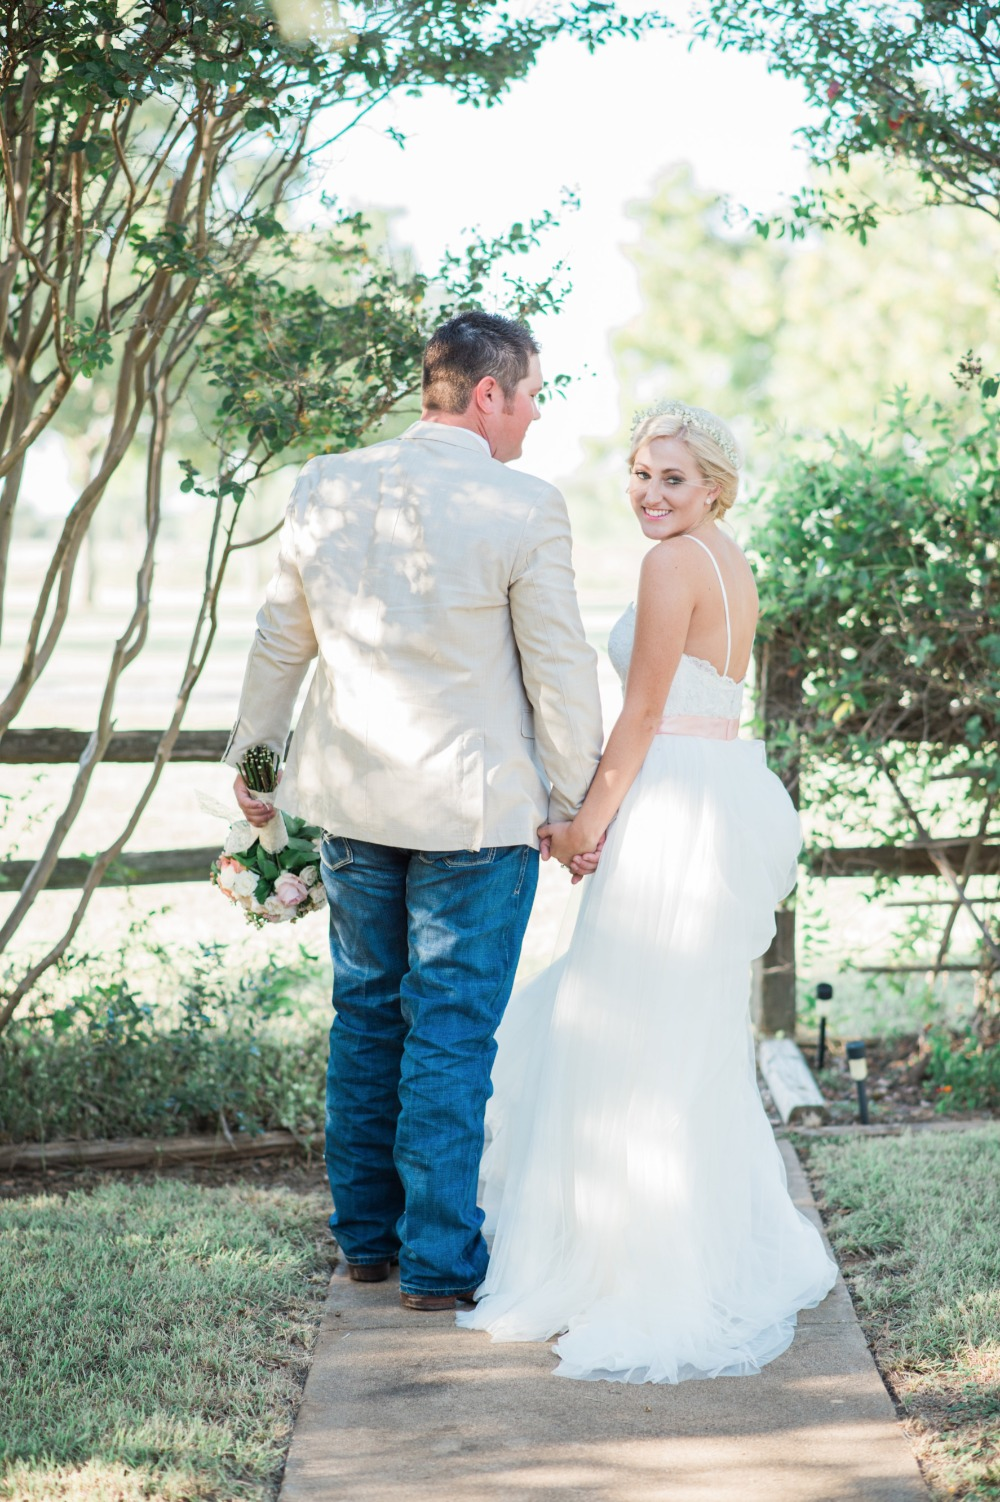 Gallery Elegant Blush And White Outdoor Country Wedding In Texas